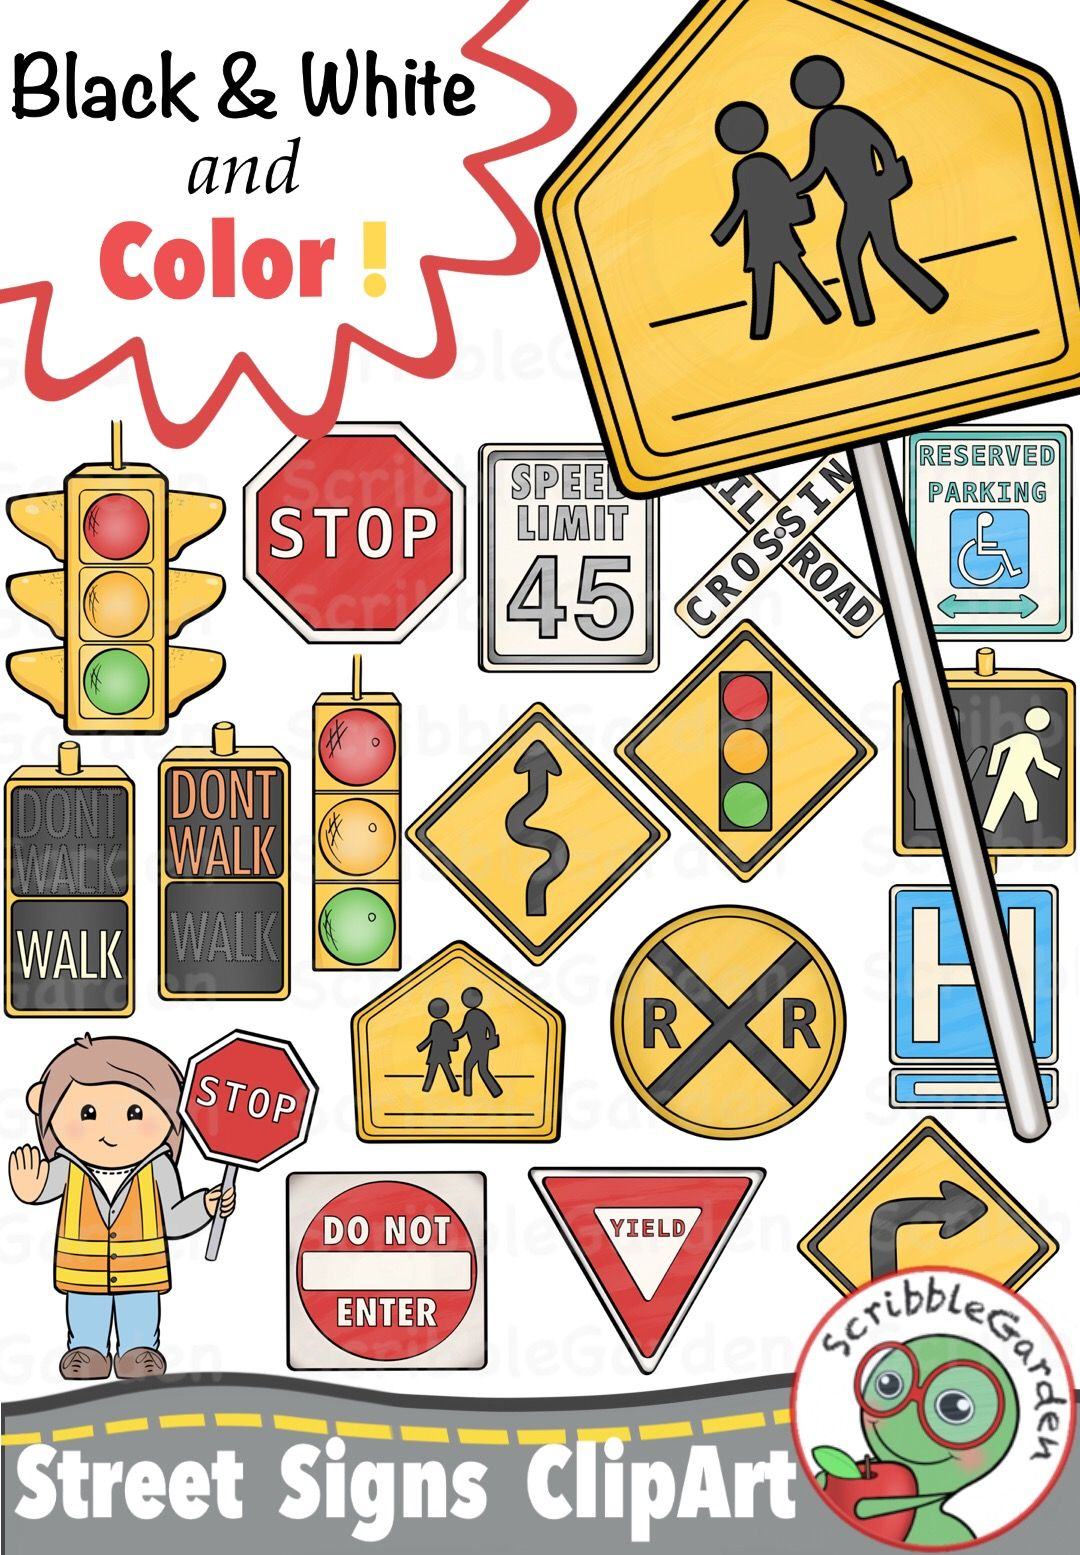 Road Safety Street Signs Clipart Street Signs Clip Art Sign